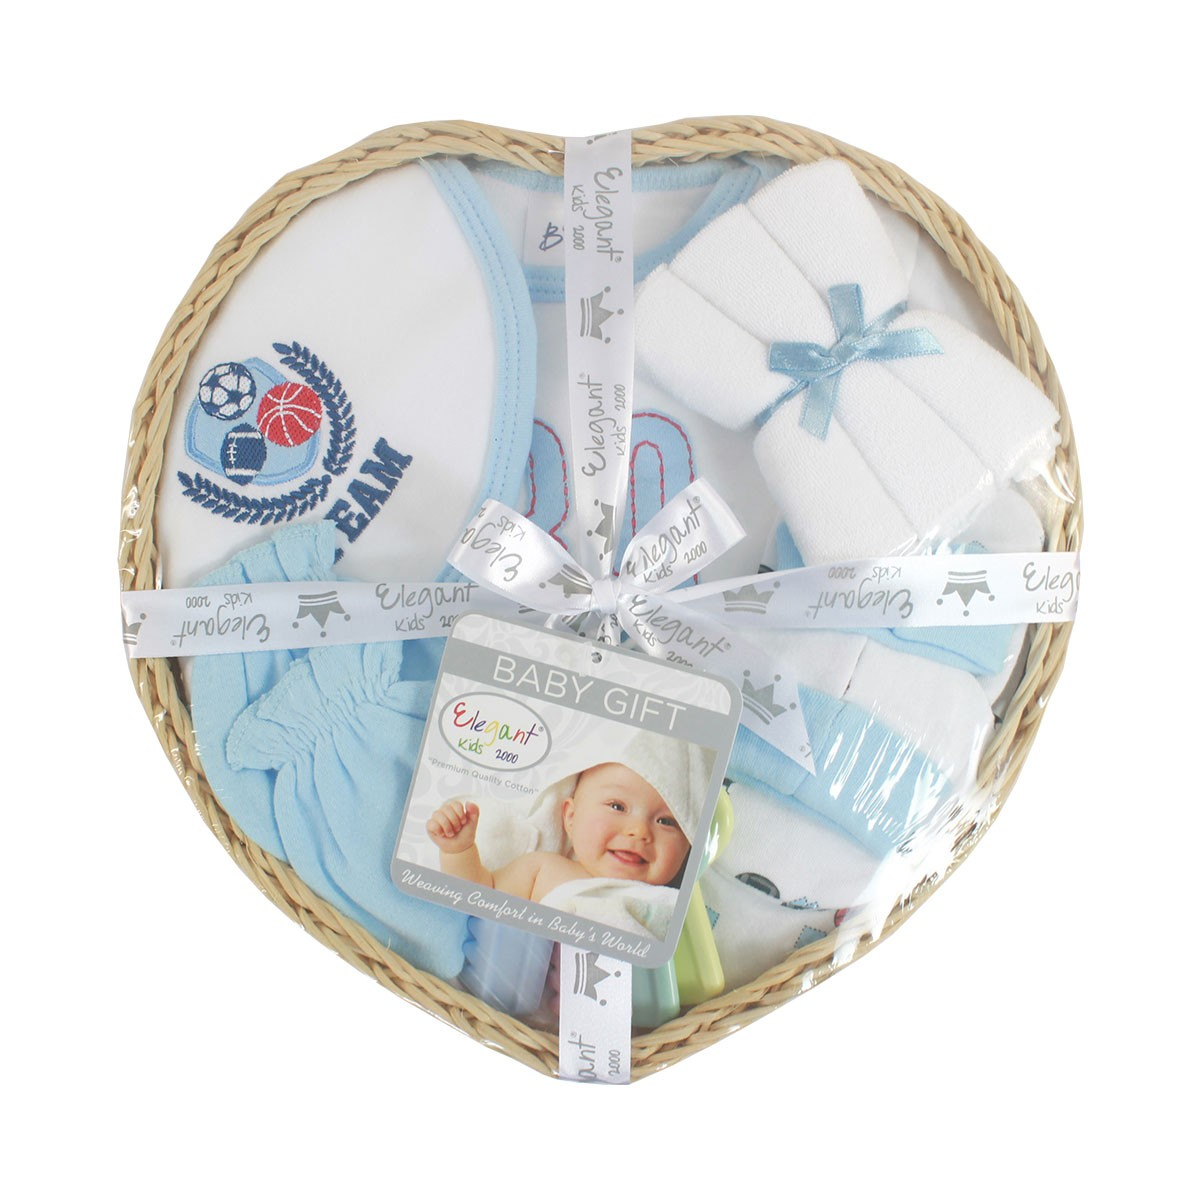 Diy do it yourself baby basket no2 for lilsoft baby diy do it yourself baby basket no2 solutioingenieria Gallery